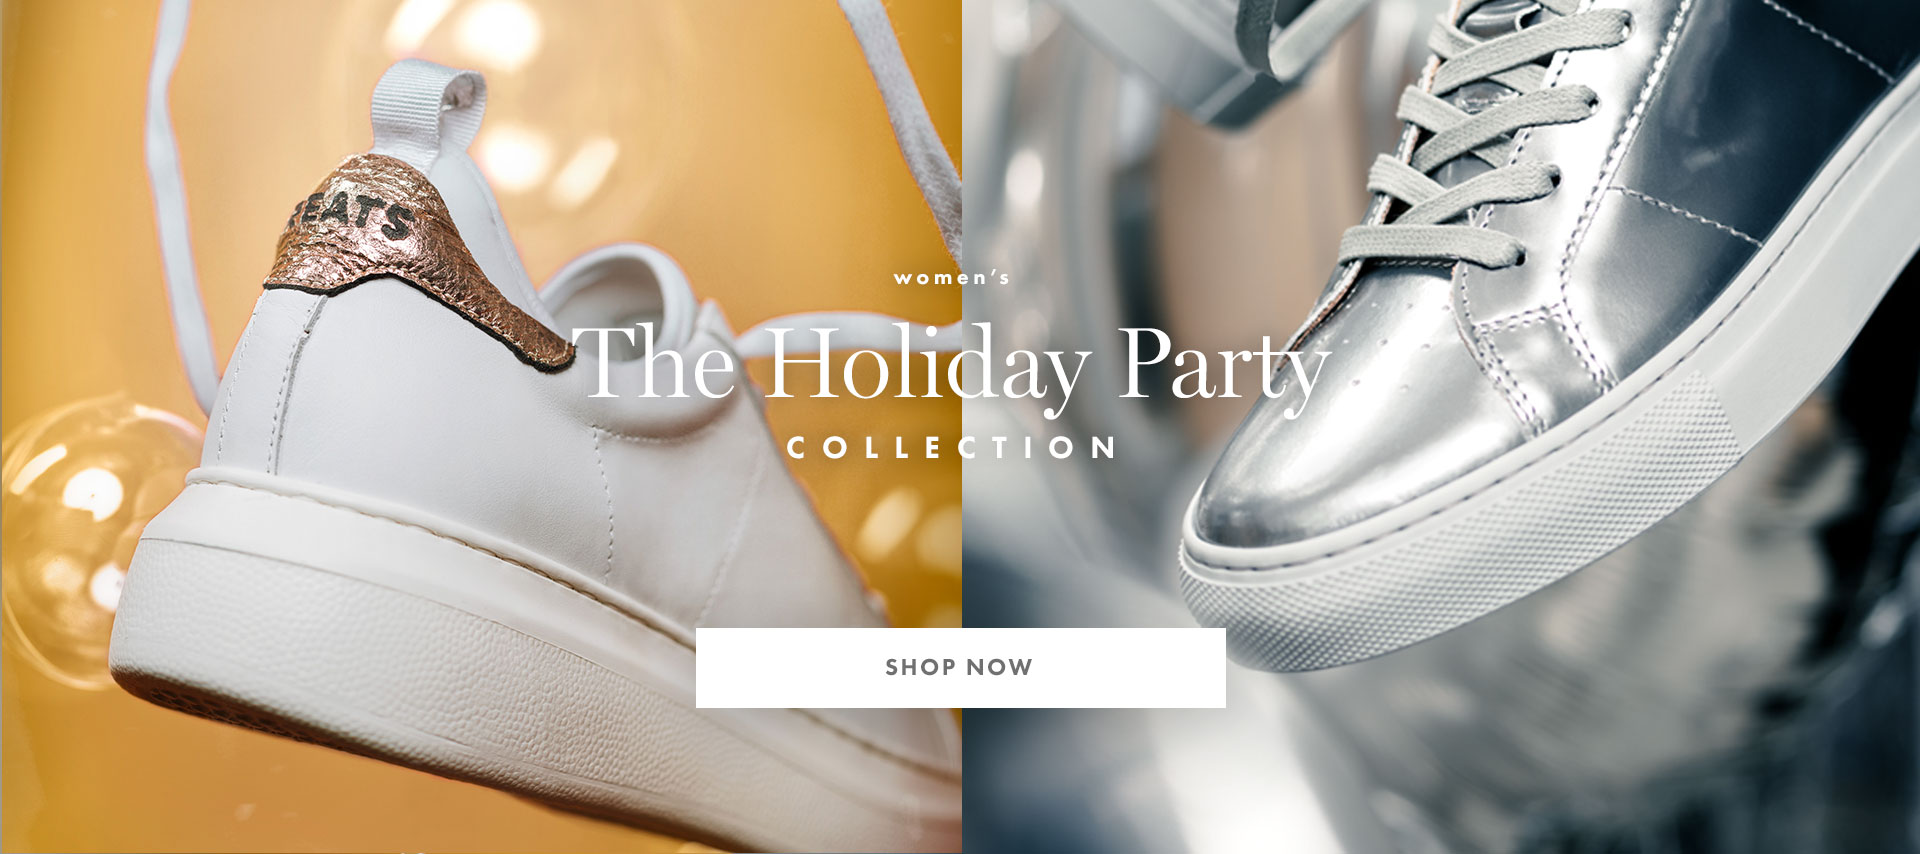 The Women's Holiday Party Collection - Shop Now